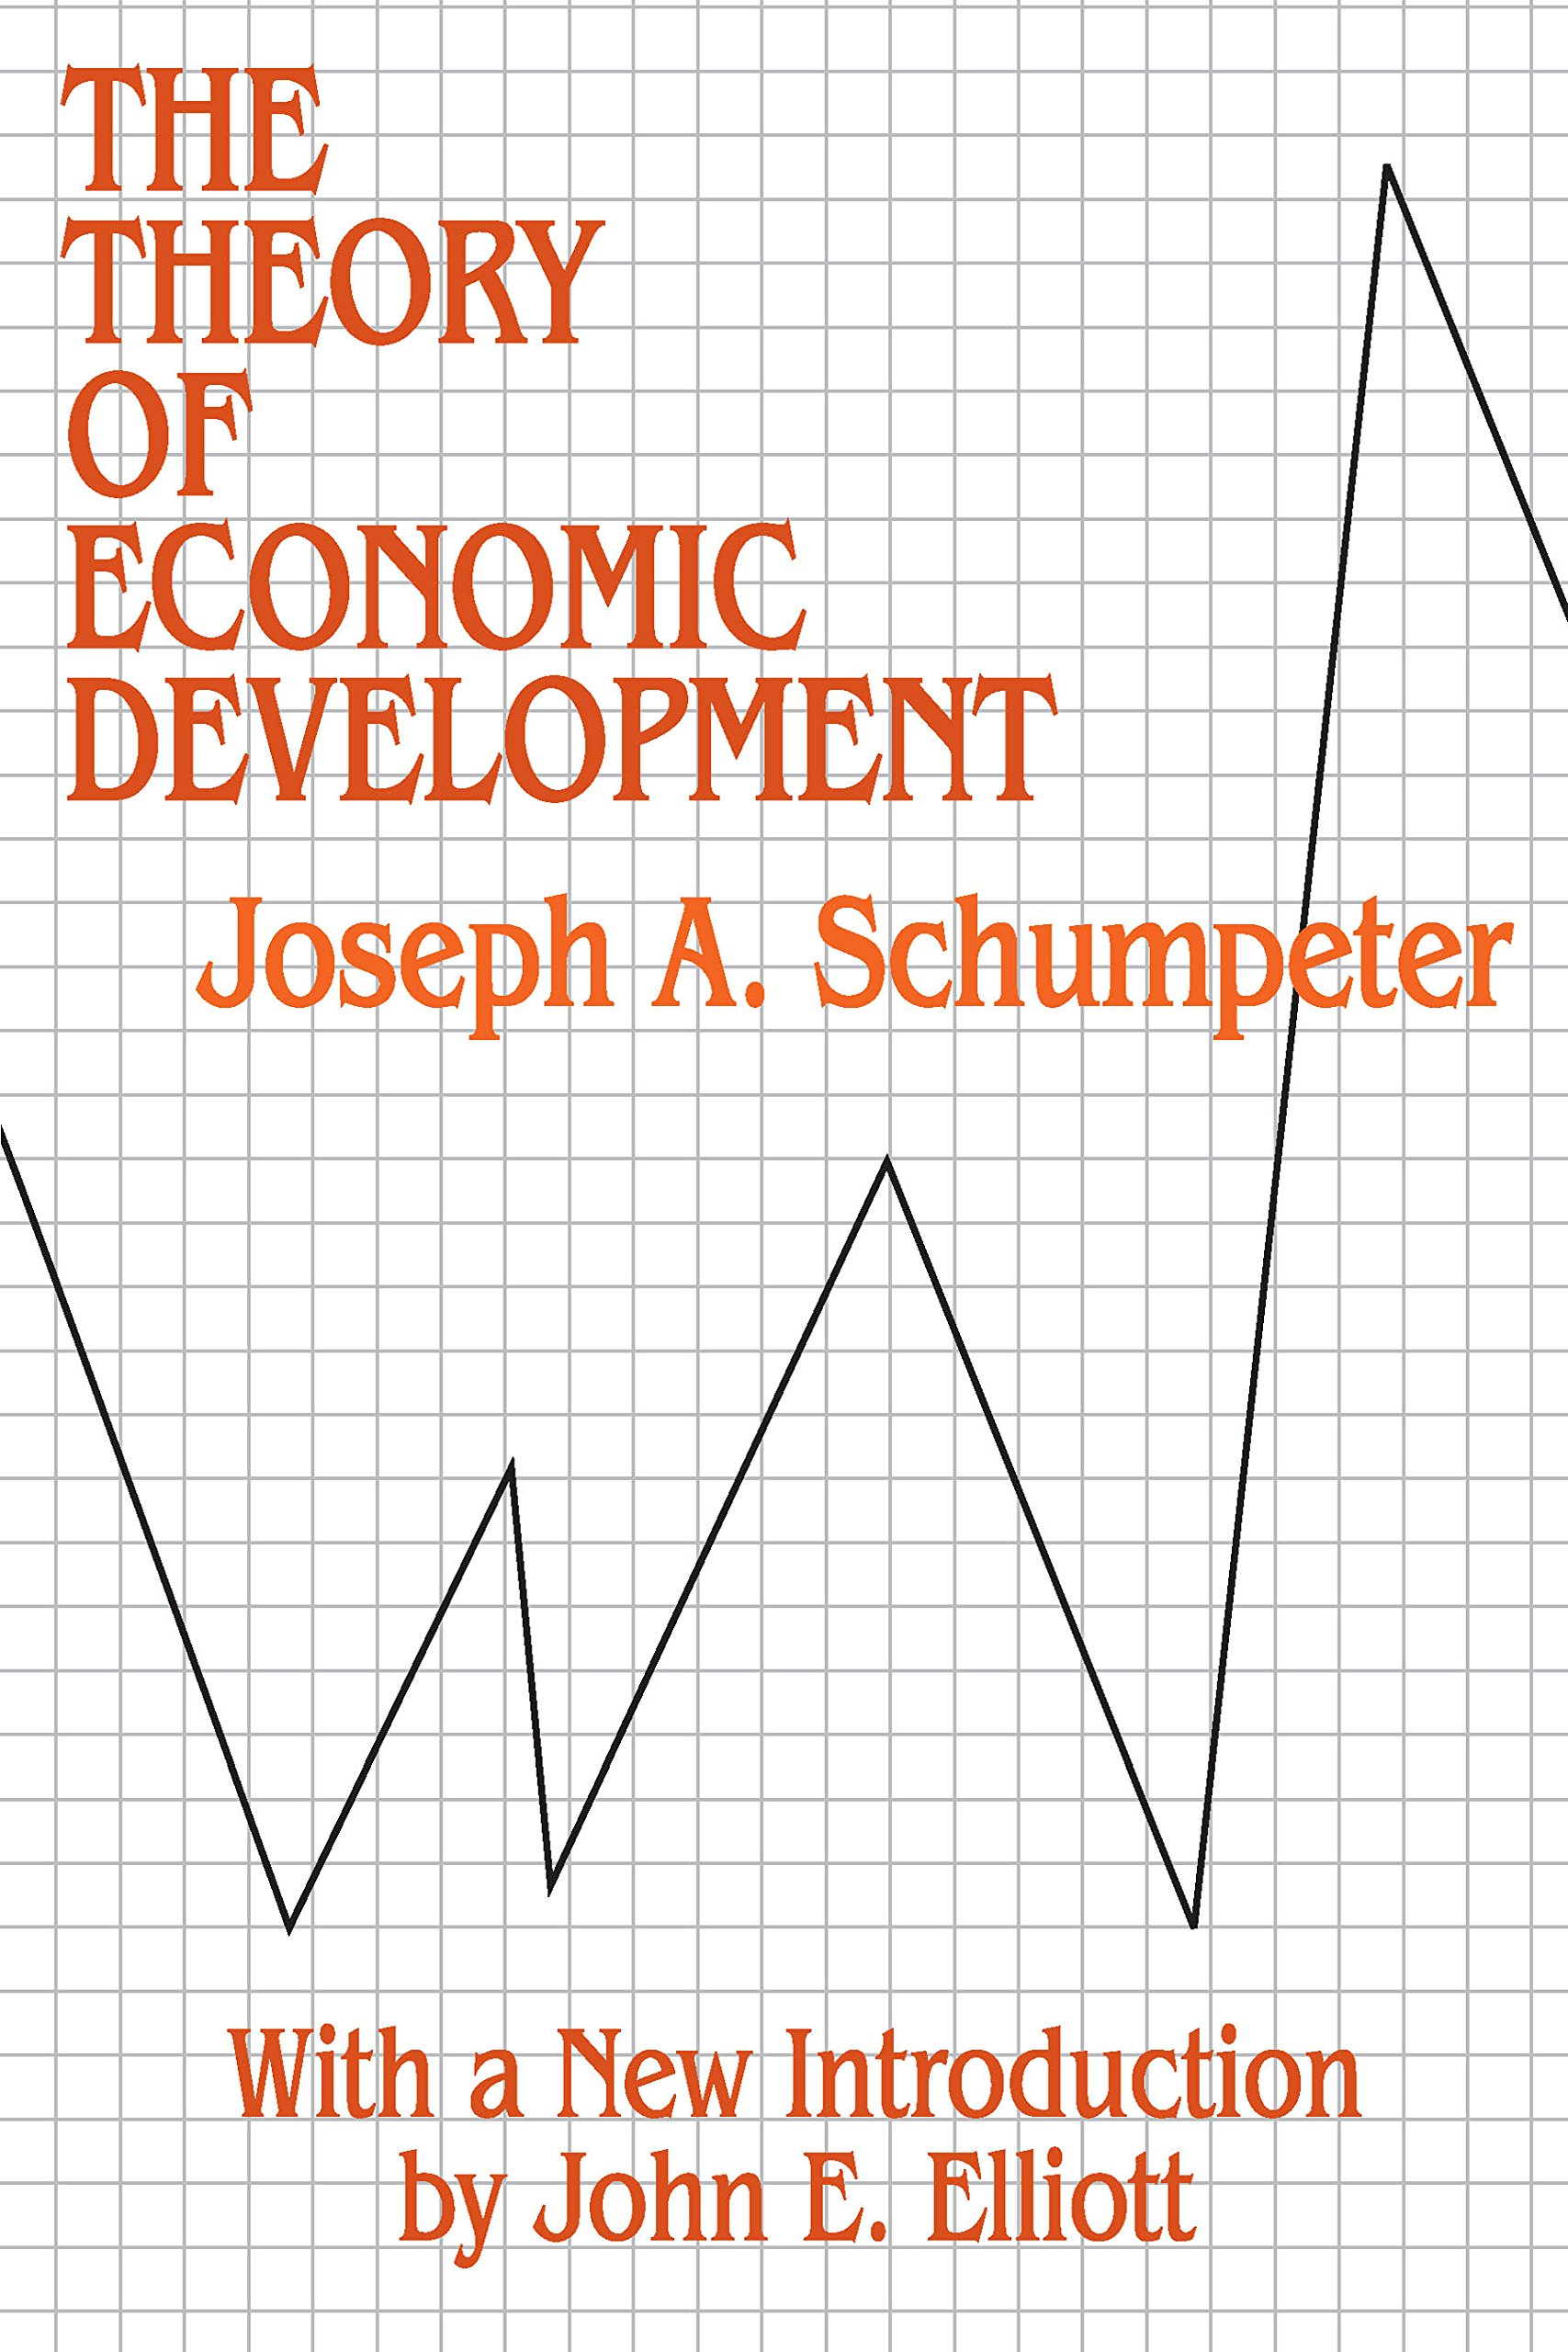 Theory of Economic Development (Social Science Classics Series Book 46)